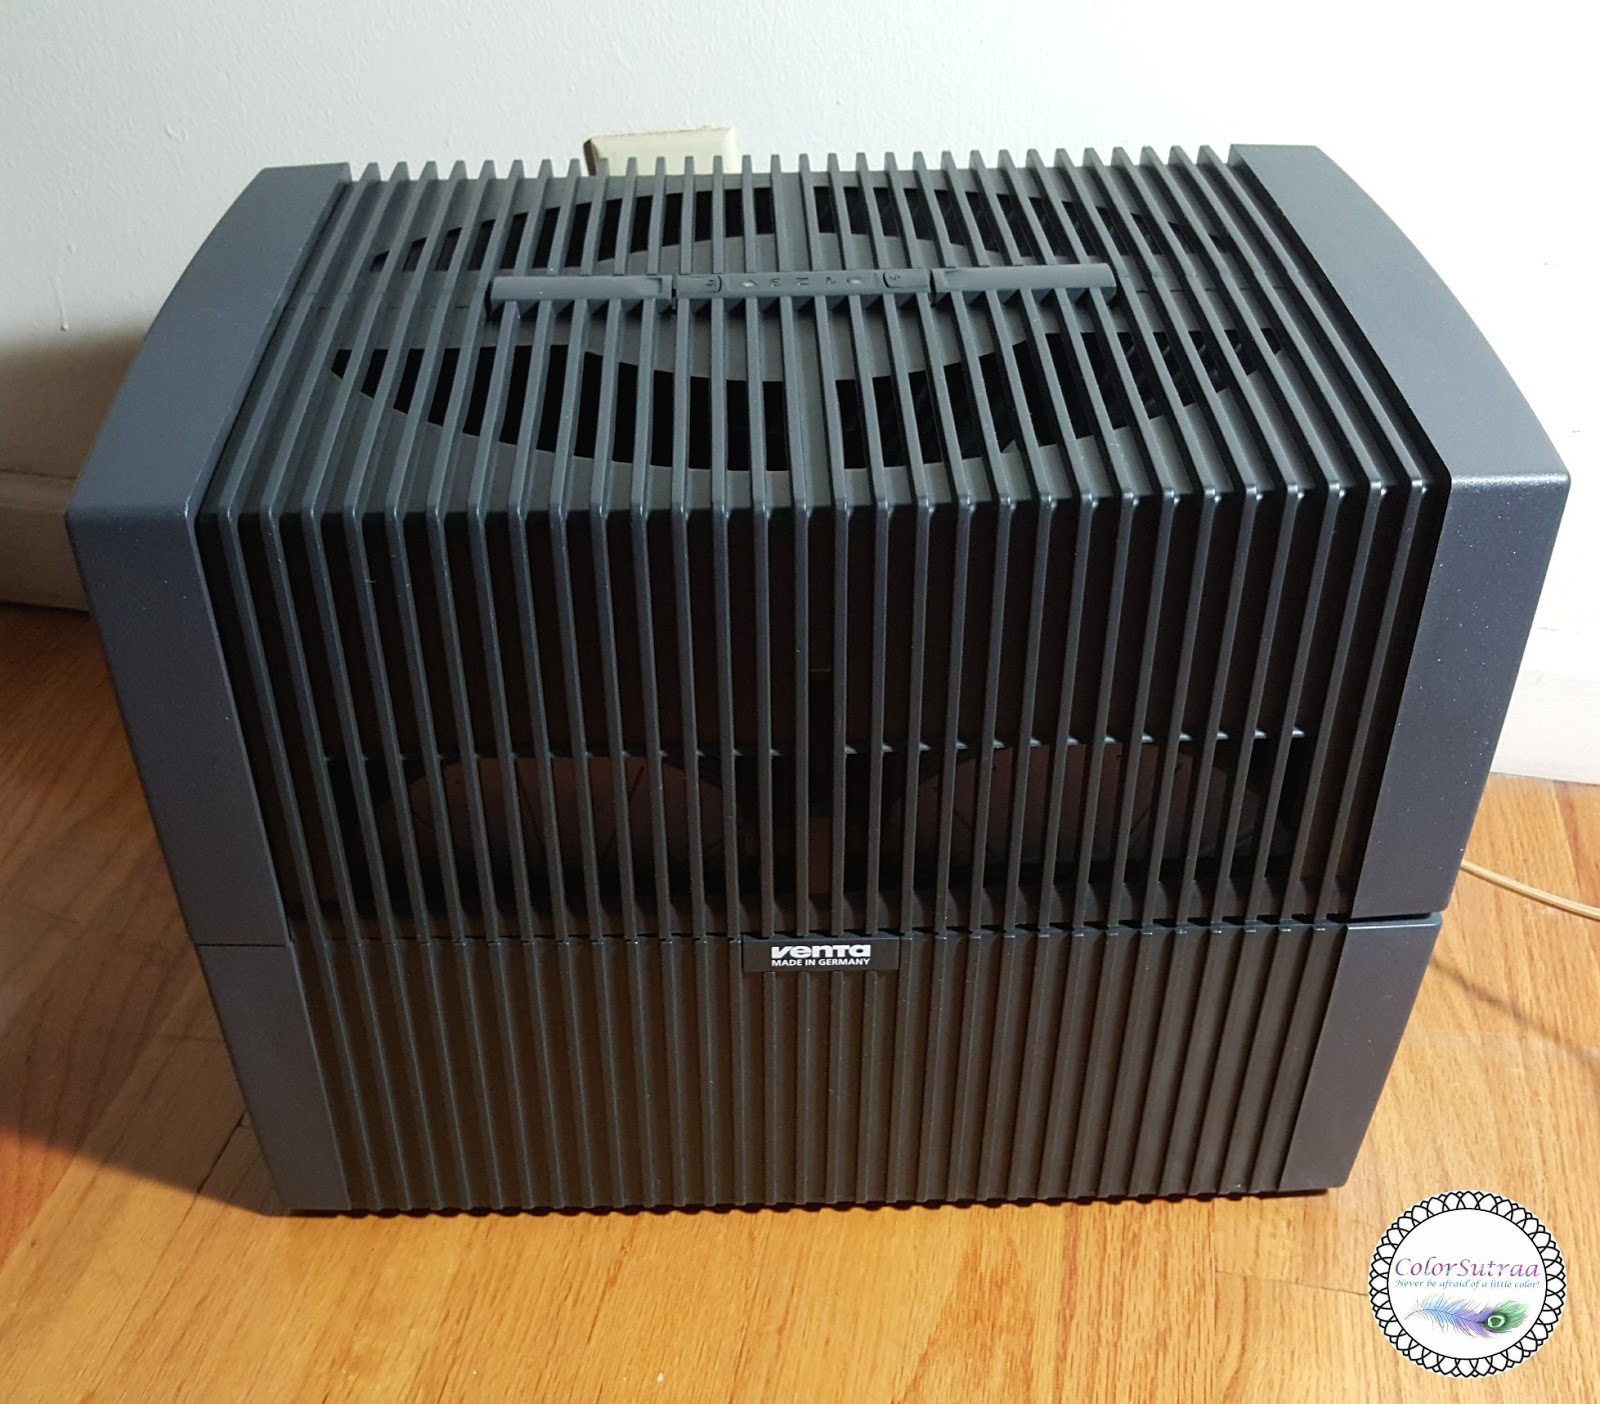 VENTA Airwasher : Review ColorSutraa #B1721A